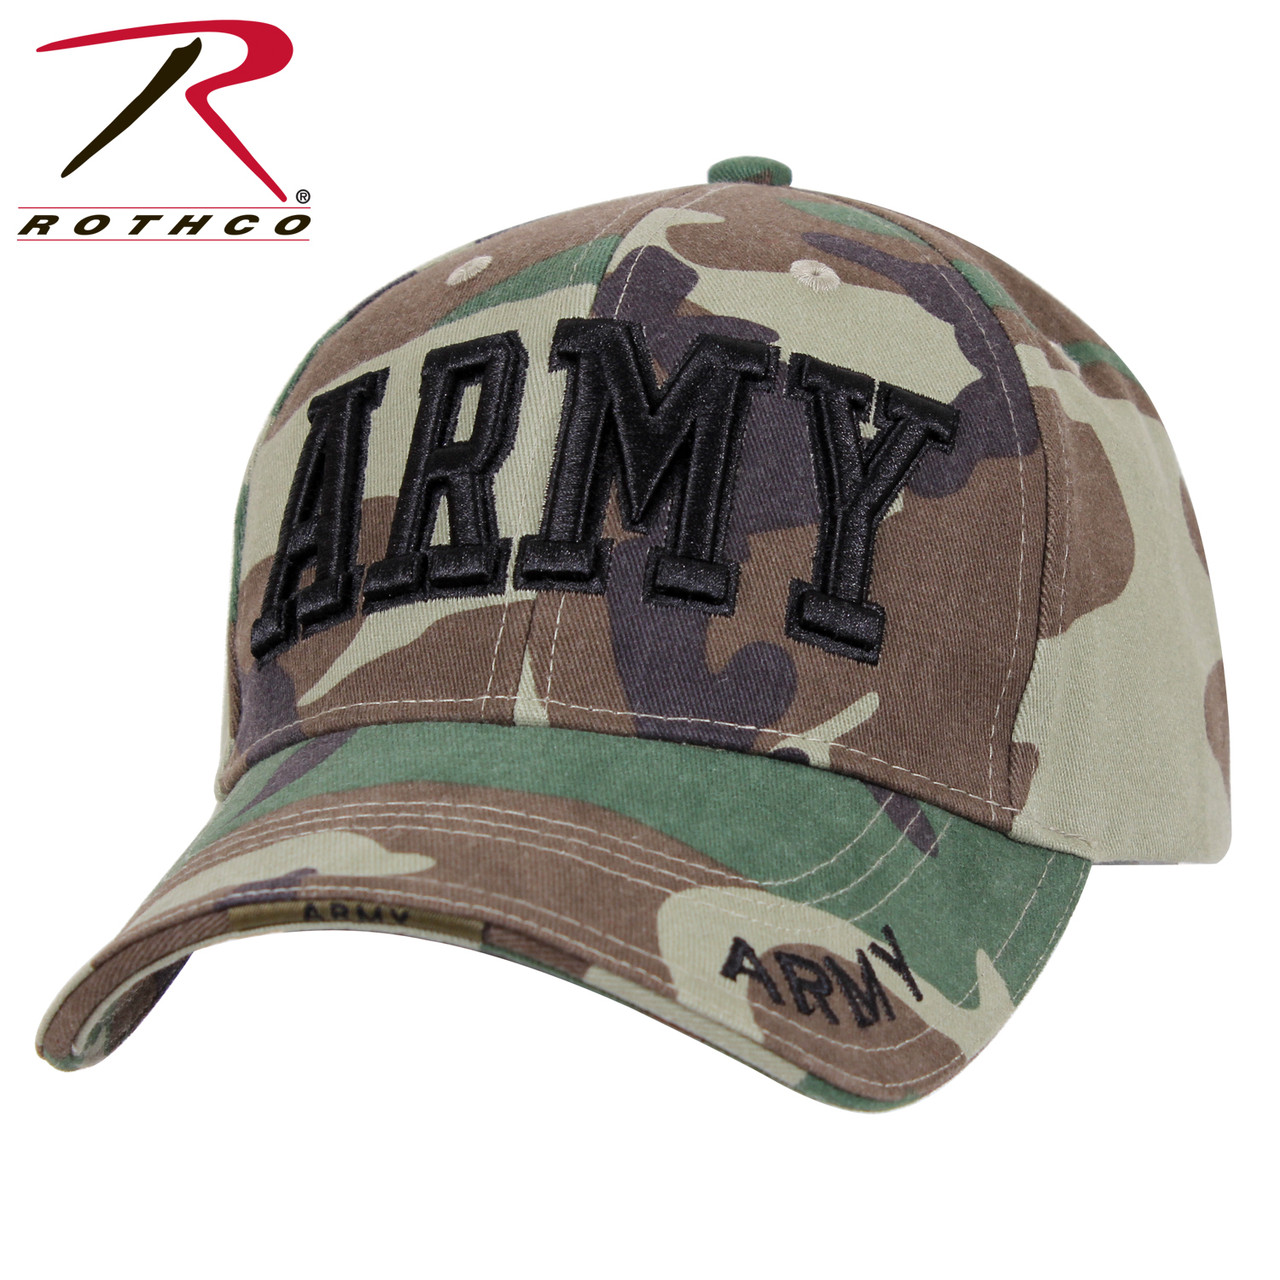 f274a9c497702 Rothco Deluxe Army Cap Embroidered Insignia Low Profile (Item  3908) -  Woodland Camo ...